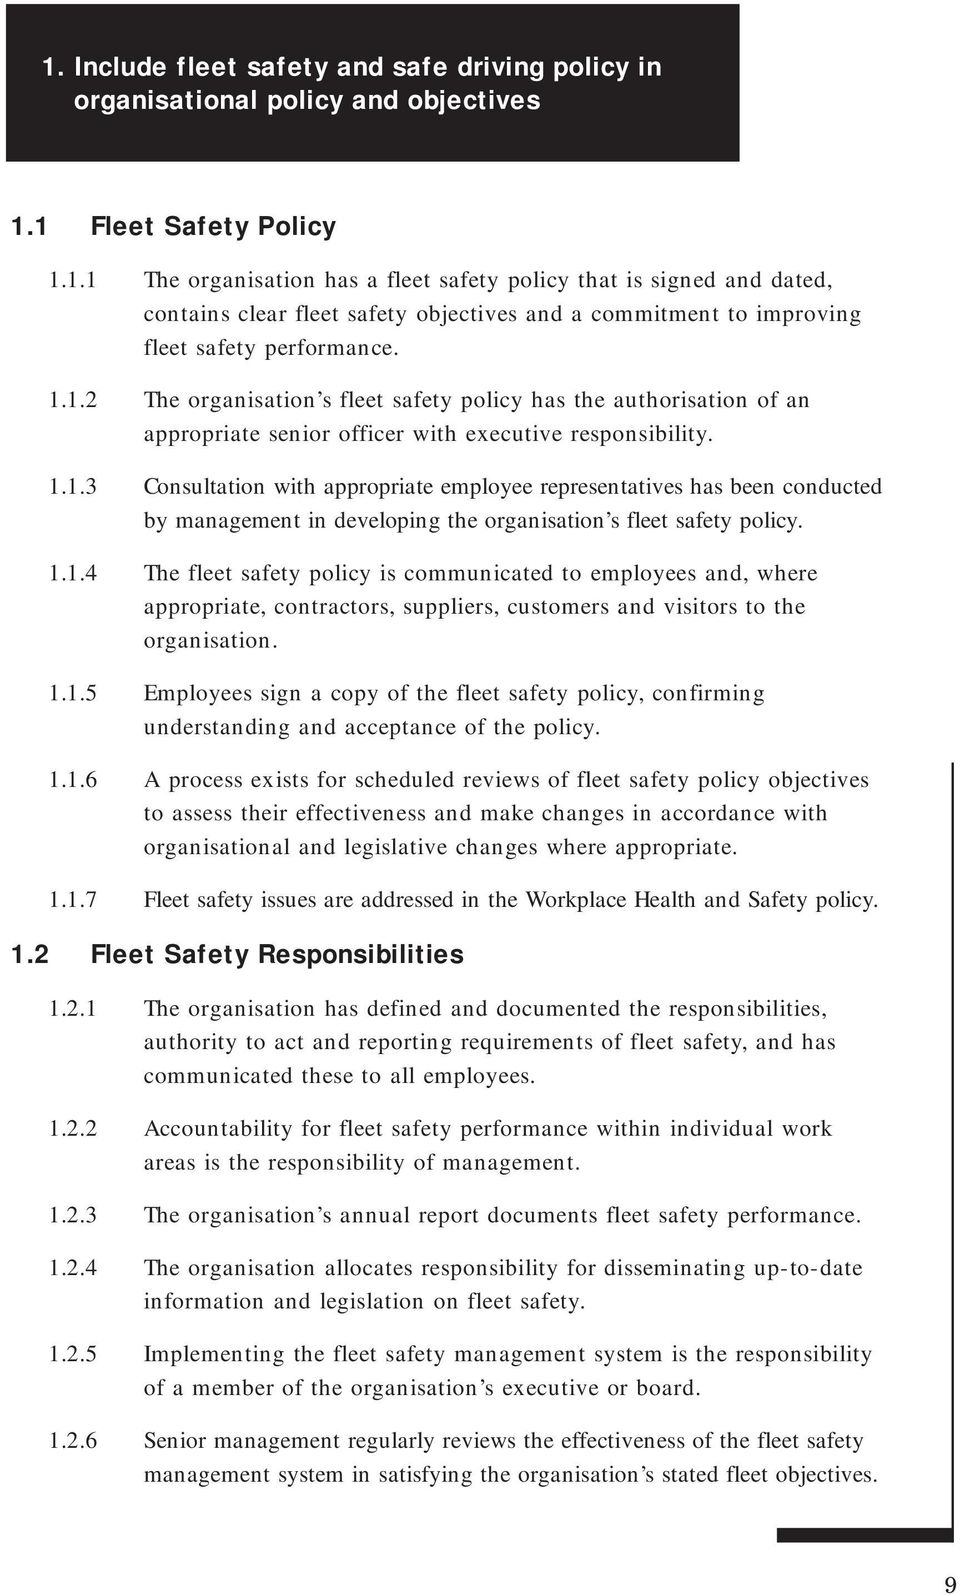 1.1.4 The fleet safety policy is communicated to employees and, where appropriate, contractors, suppliers, customers and visitors to the organisation. 1.1.5 Employees sign a copy of the fleet safety policy, confirming understanding and acceptance of the policy.